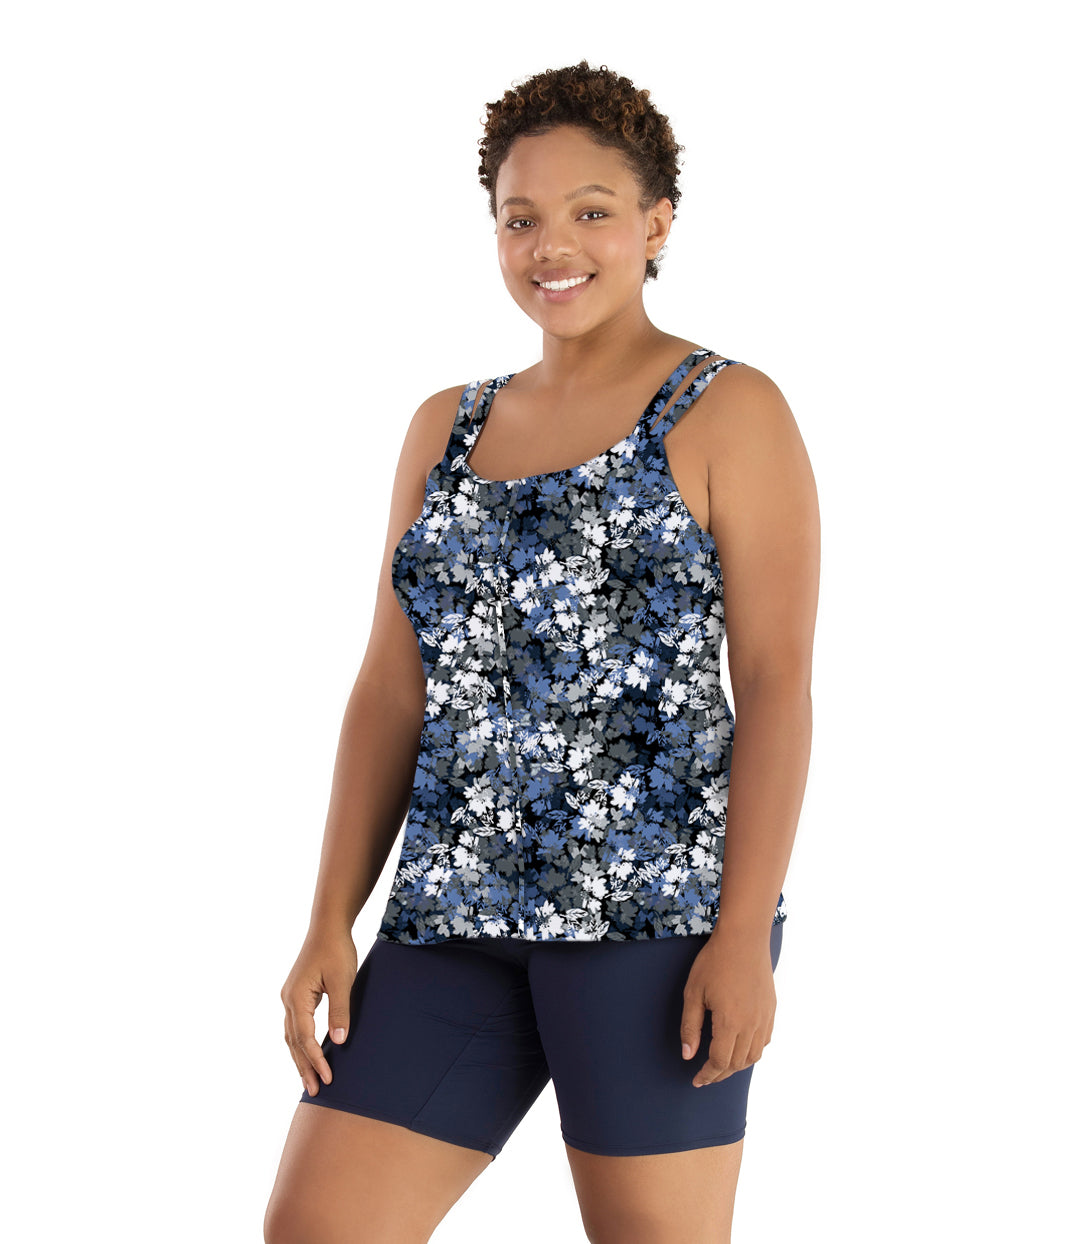 Junowear Hush Strappy Cami with Bra Blue Floral Print-Tops Tanks-Hop Wo Trading Co Ltd-1X-Blue Floral-JunoActive